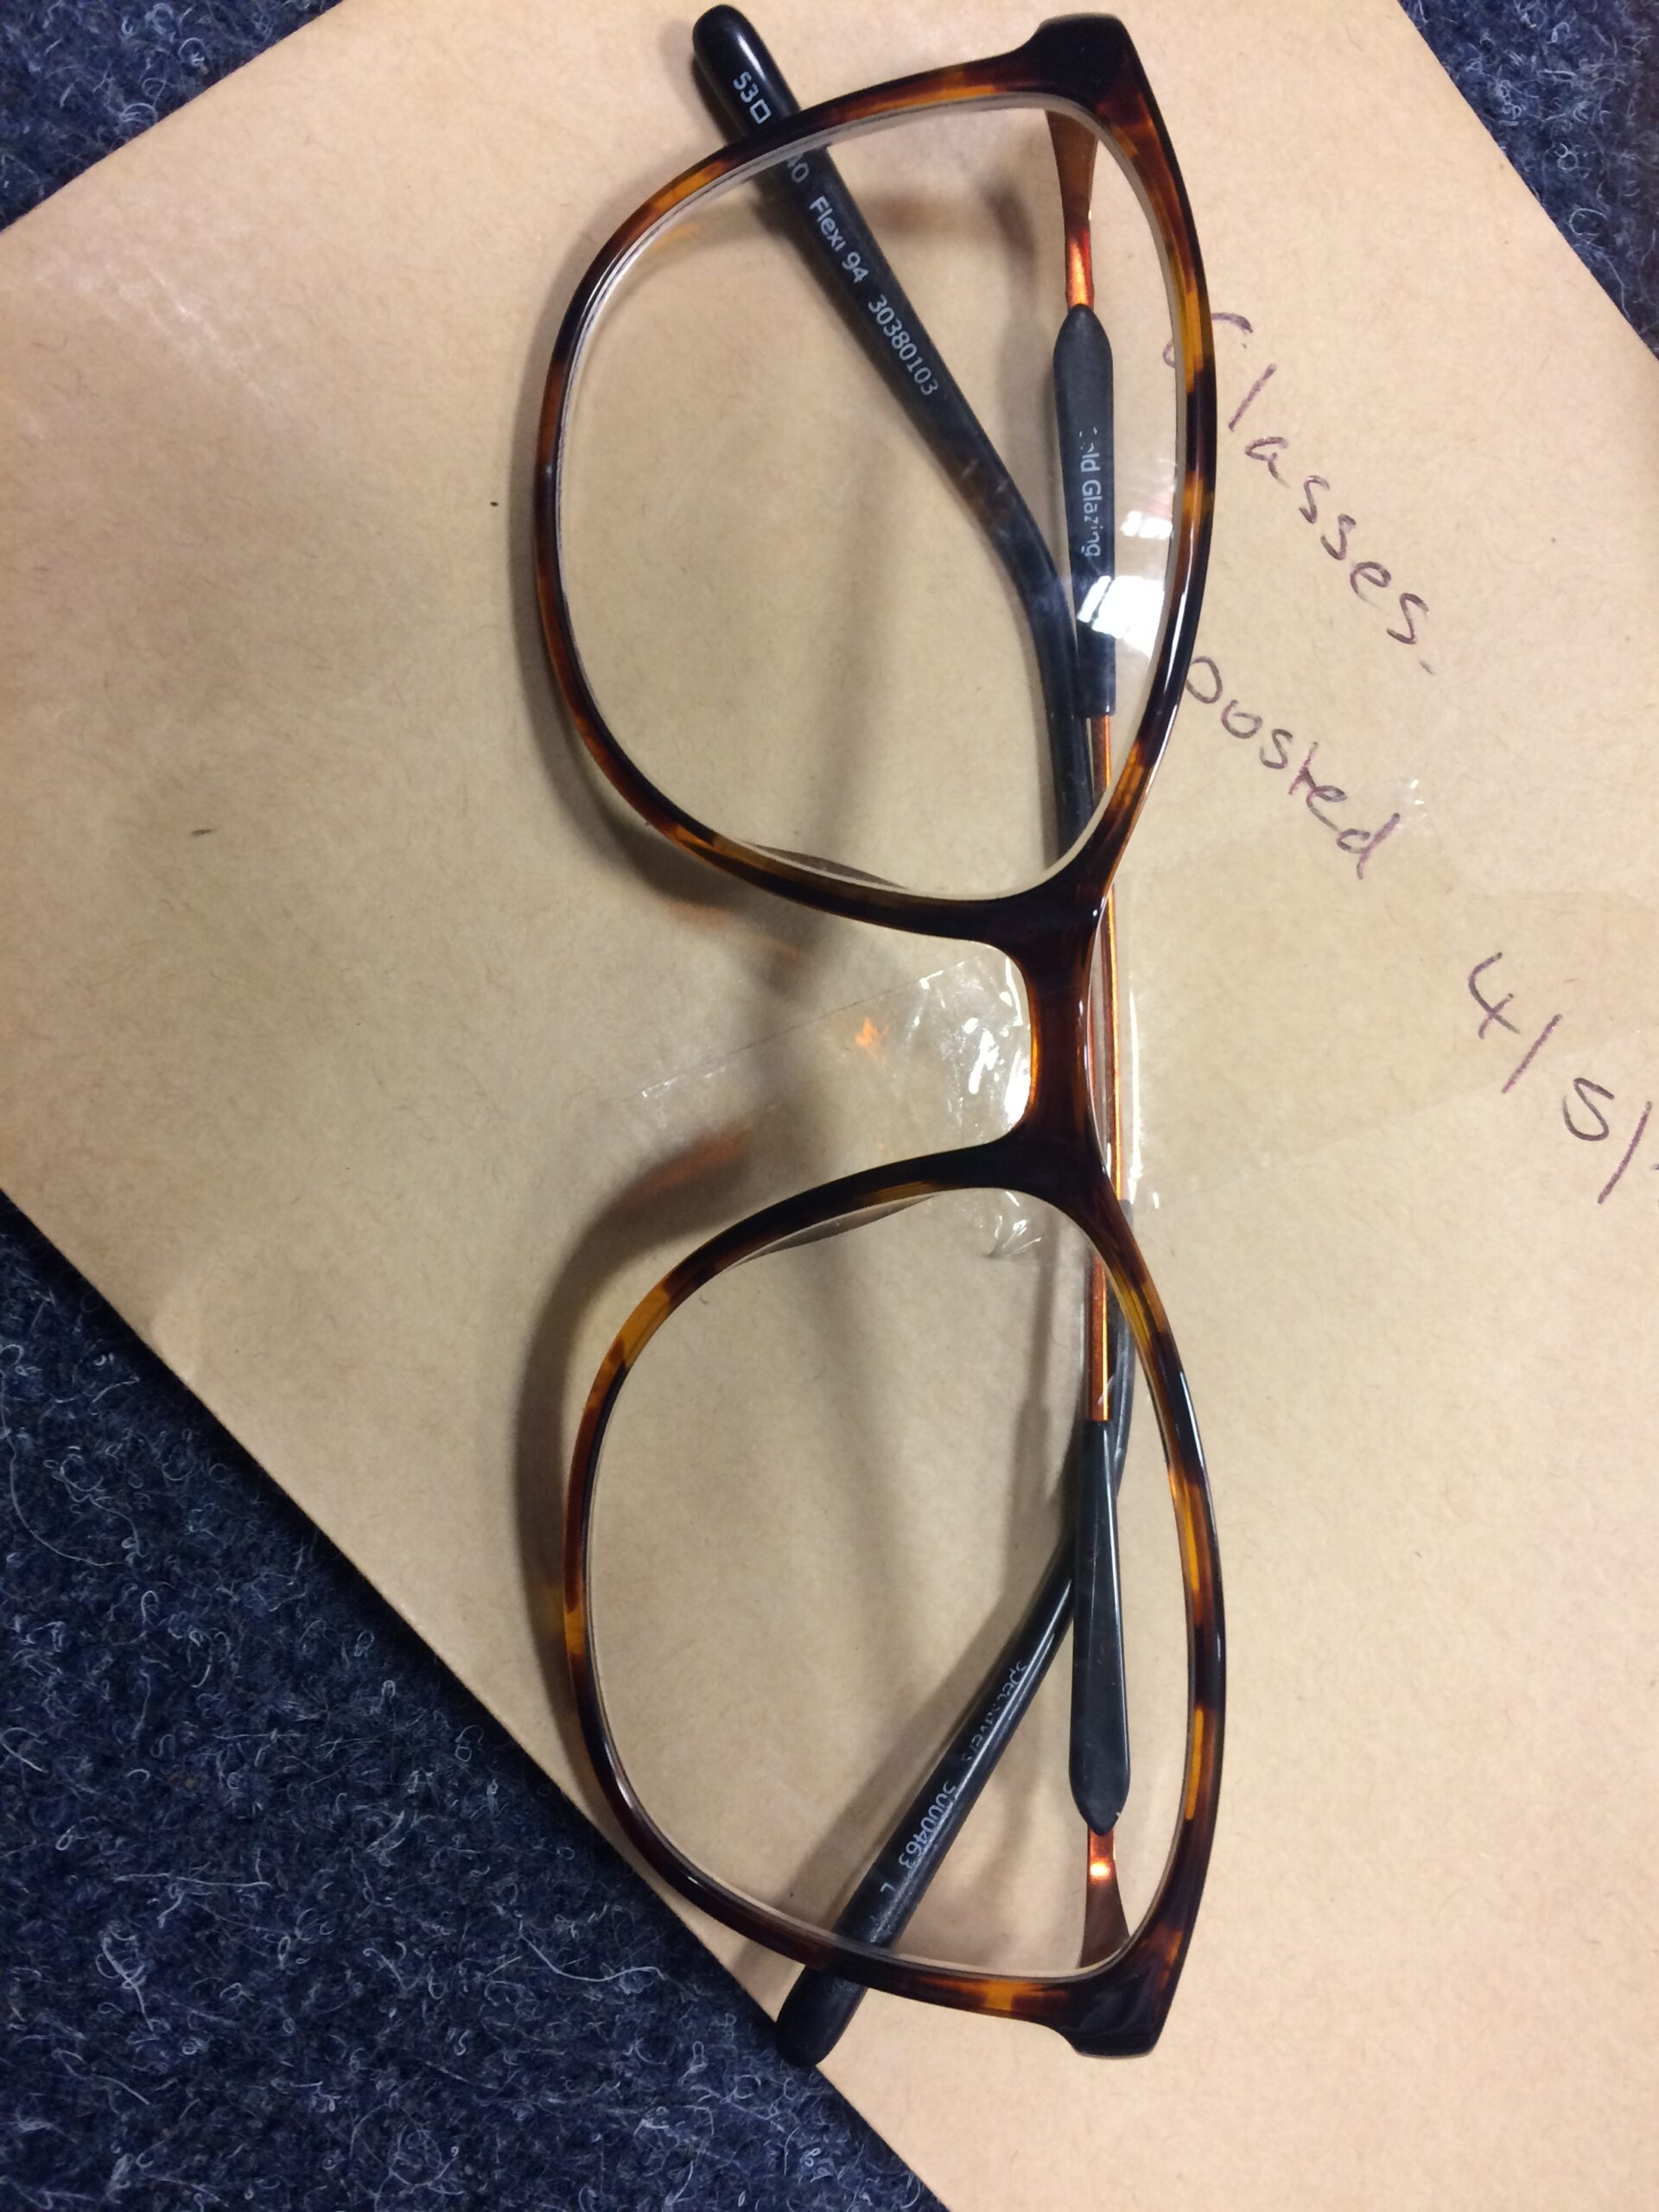 Alsager Community Support | Free Help and Advice for Local People | Brown framed glasses